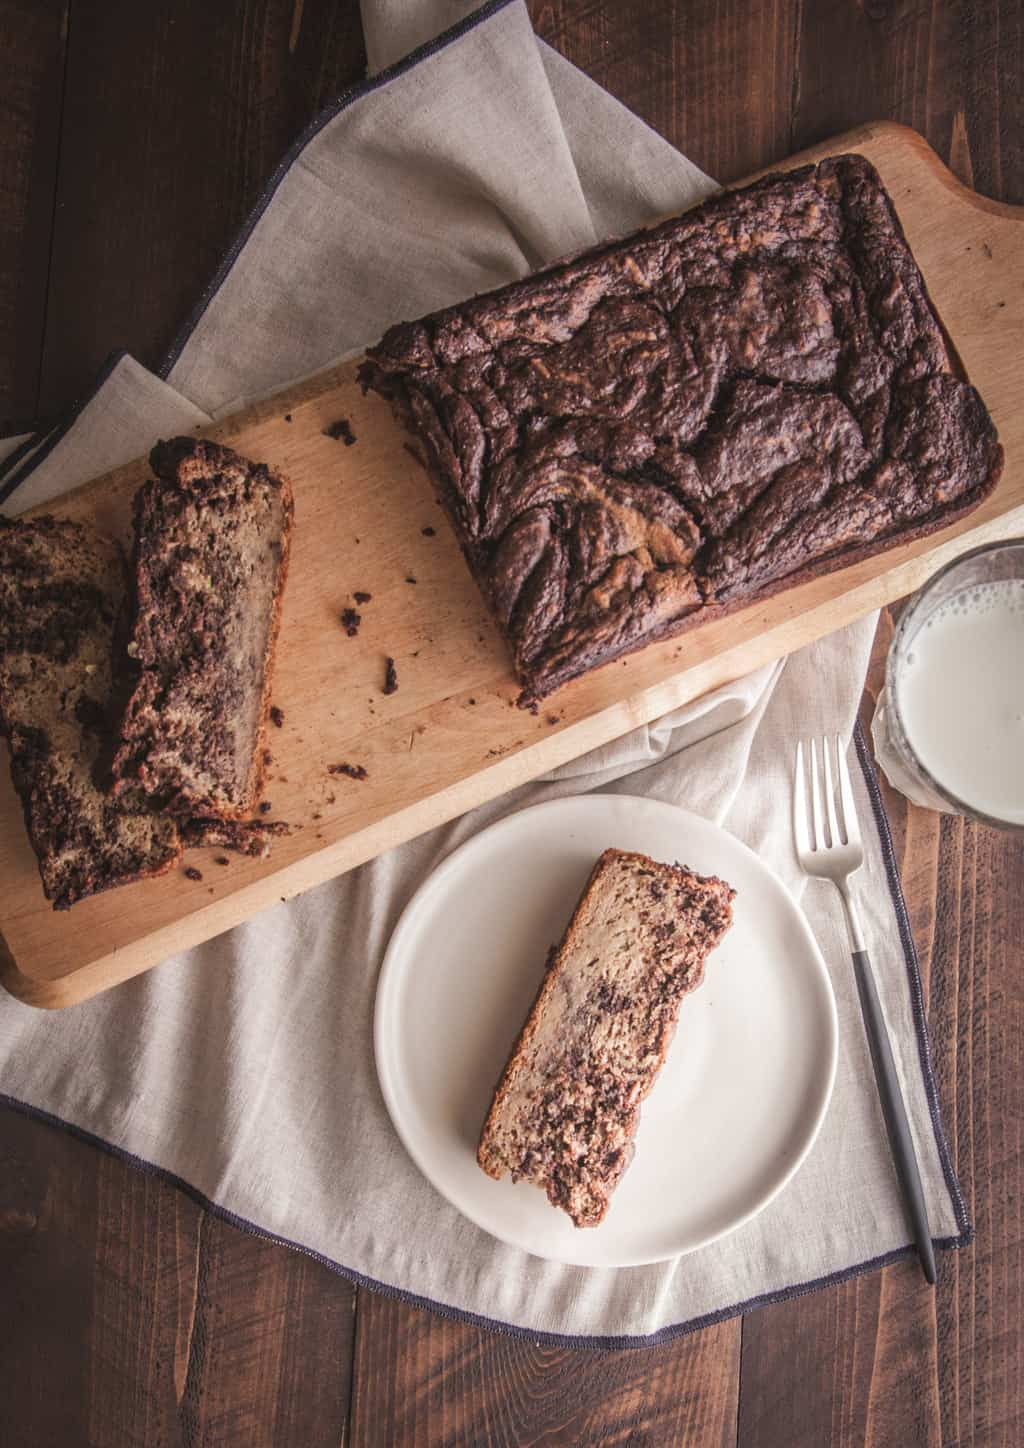 Zucchini banana nutella swirl loaf from @sweetphi